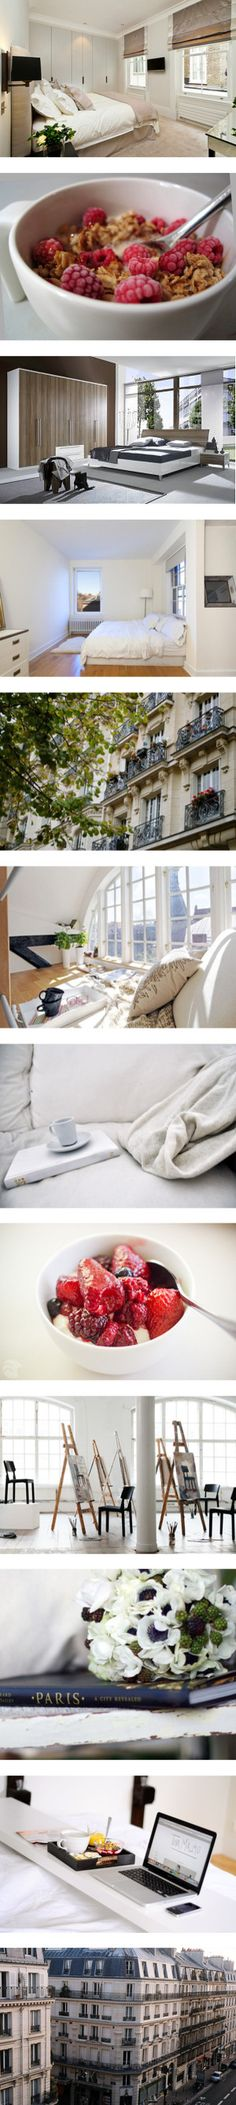 """""""Give me a tiny apartament, enough food to live and a job I love"""" by bookswithvanilla ❤ liked on Polyvore"""